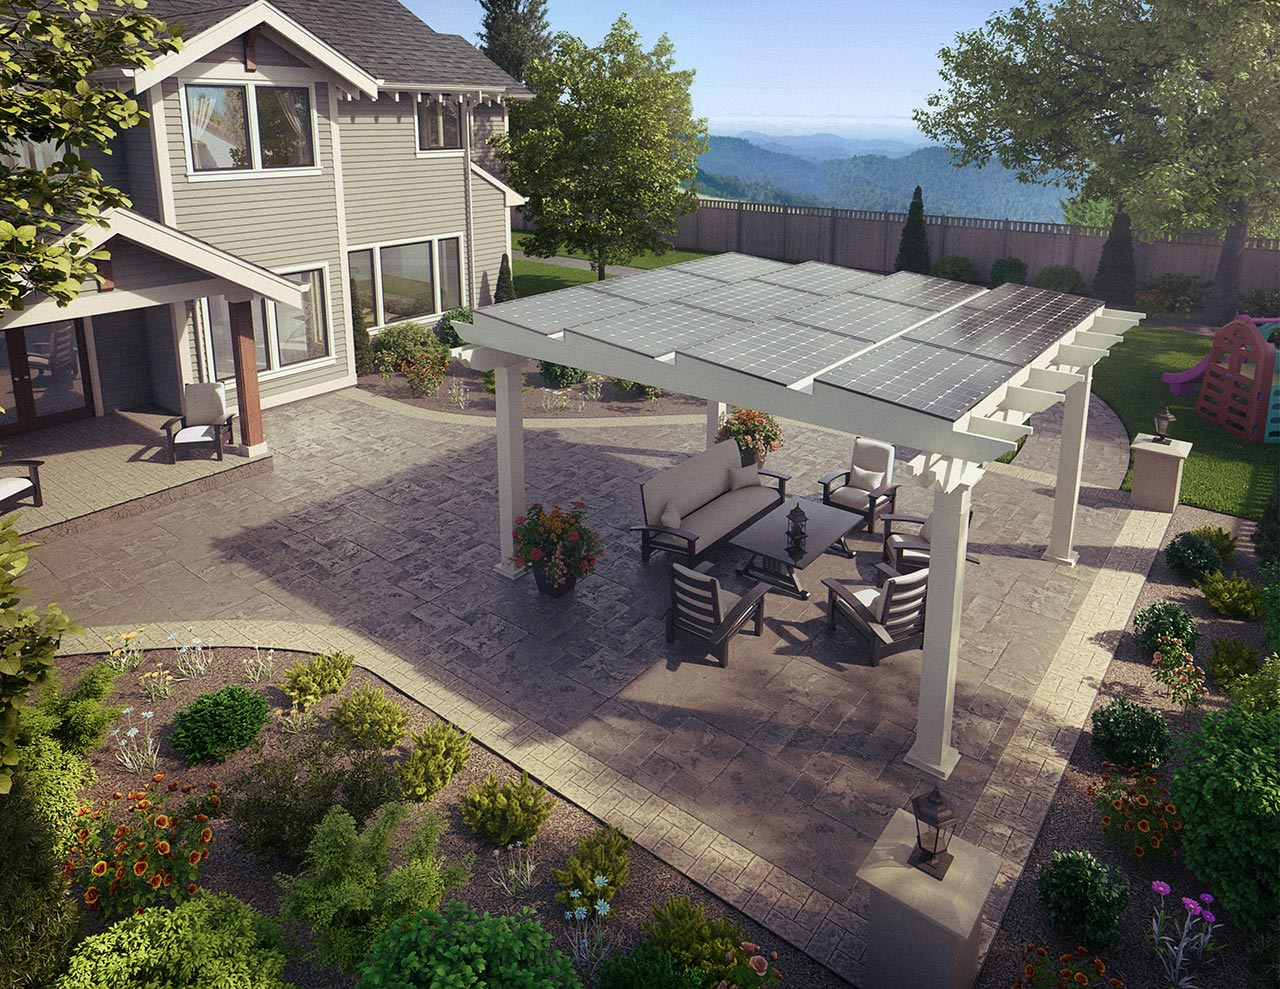 Aerial view of backyard patio under an awning with solar panels